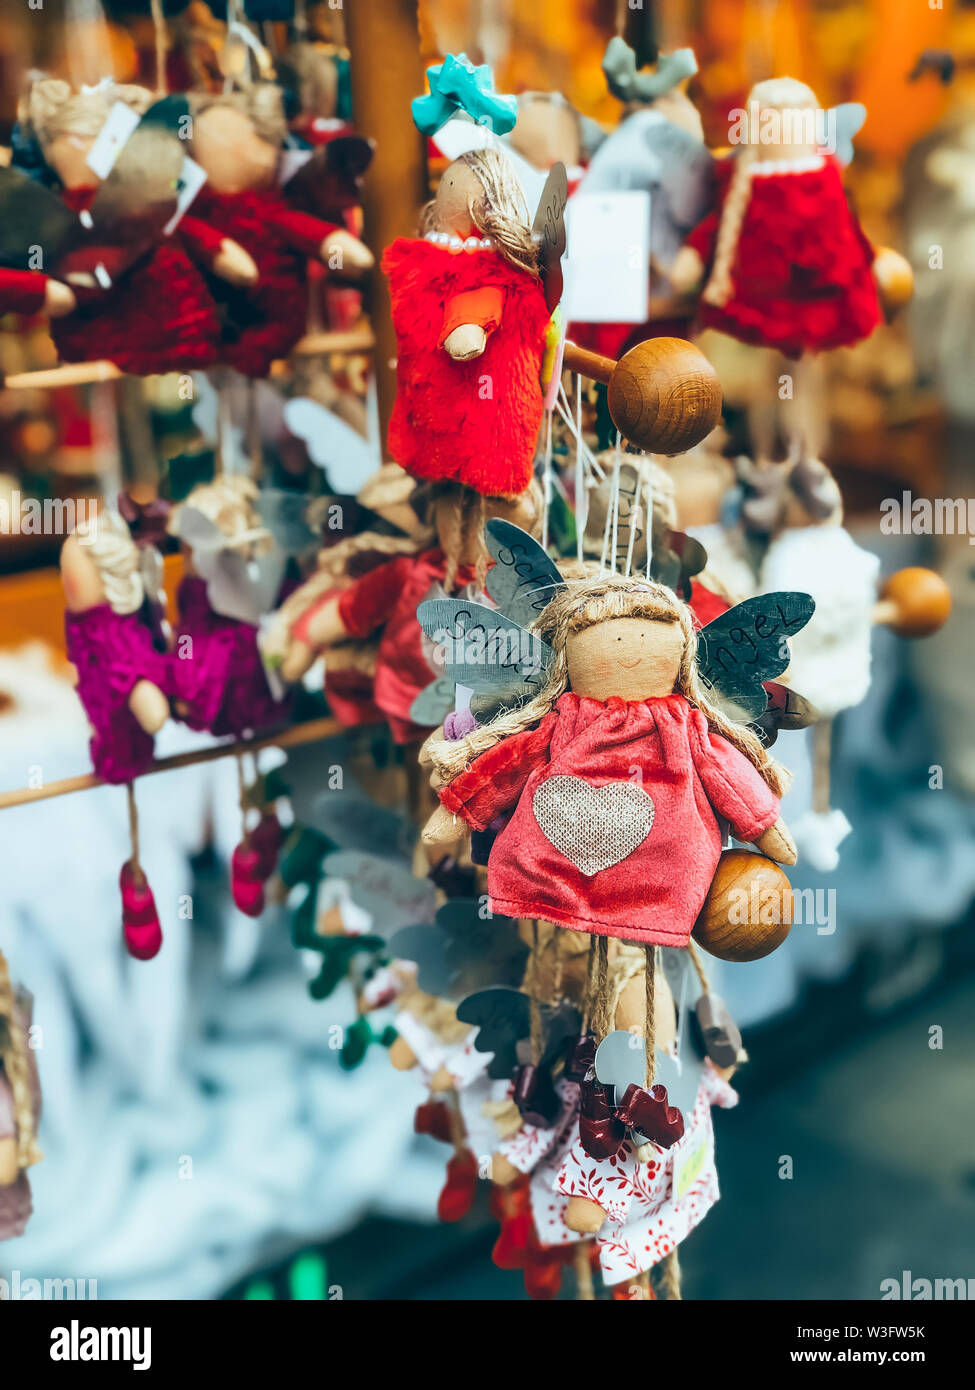 Beautiful Christmas tree decoration on outdoor Christmas market in Munich. Mobile photo - Stock Image